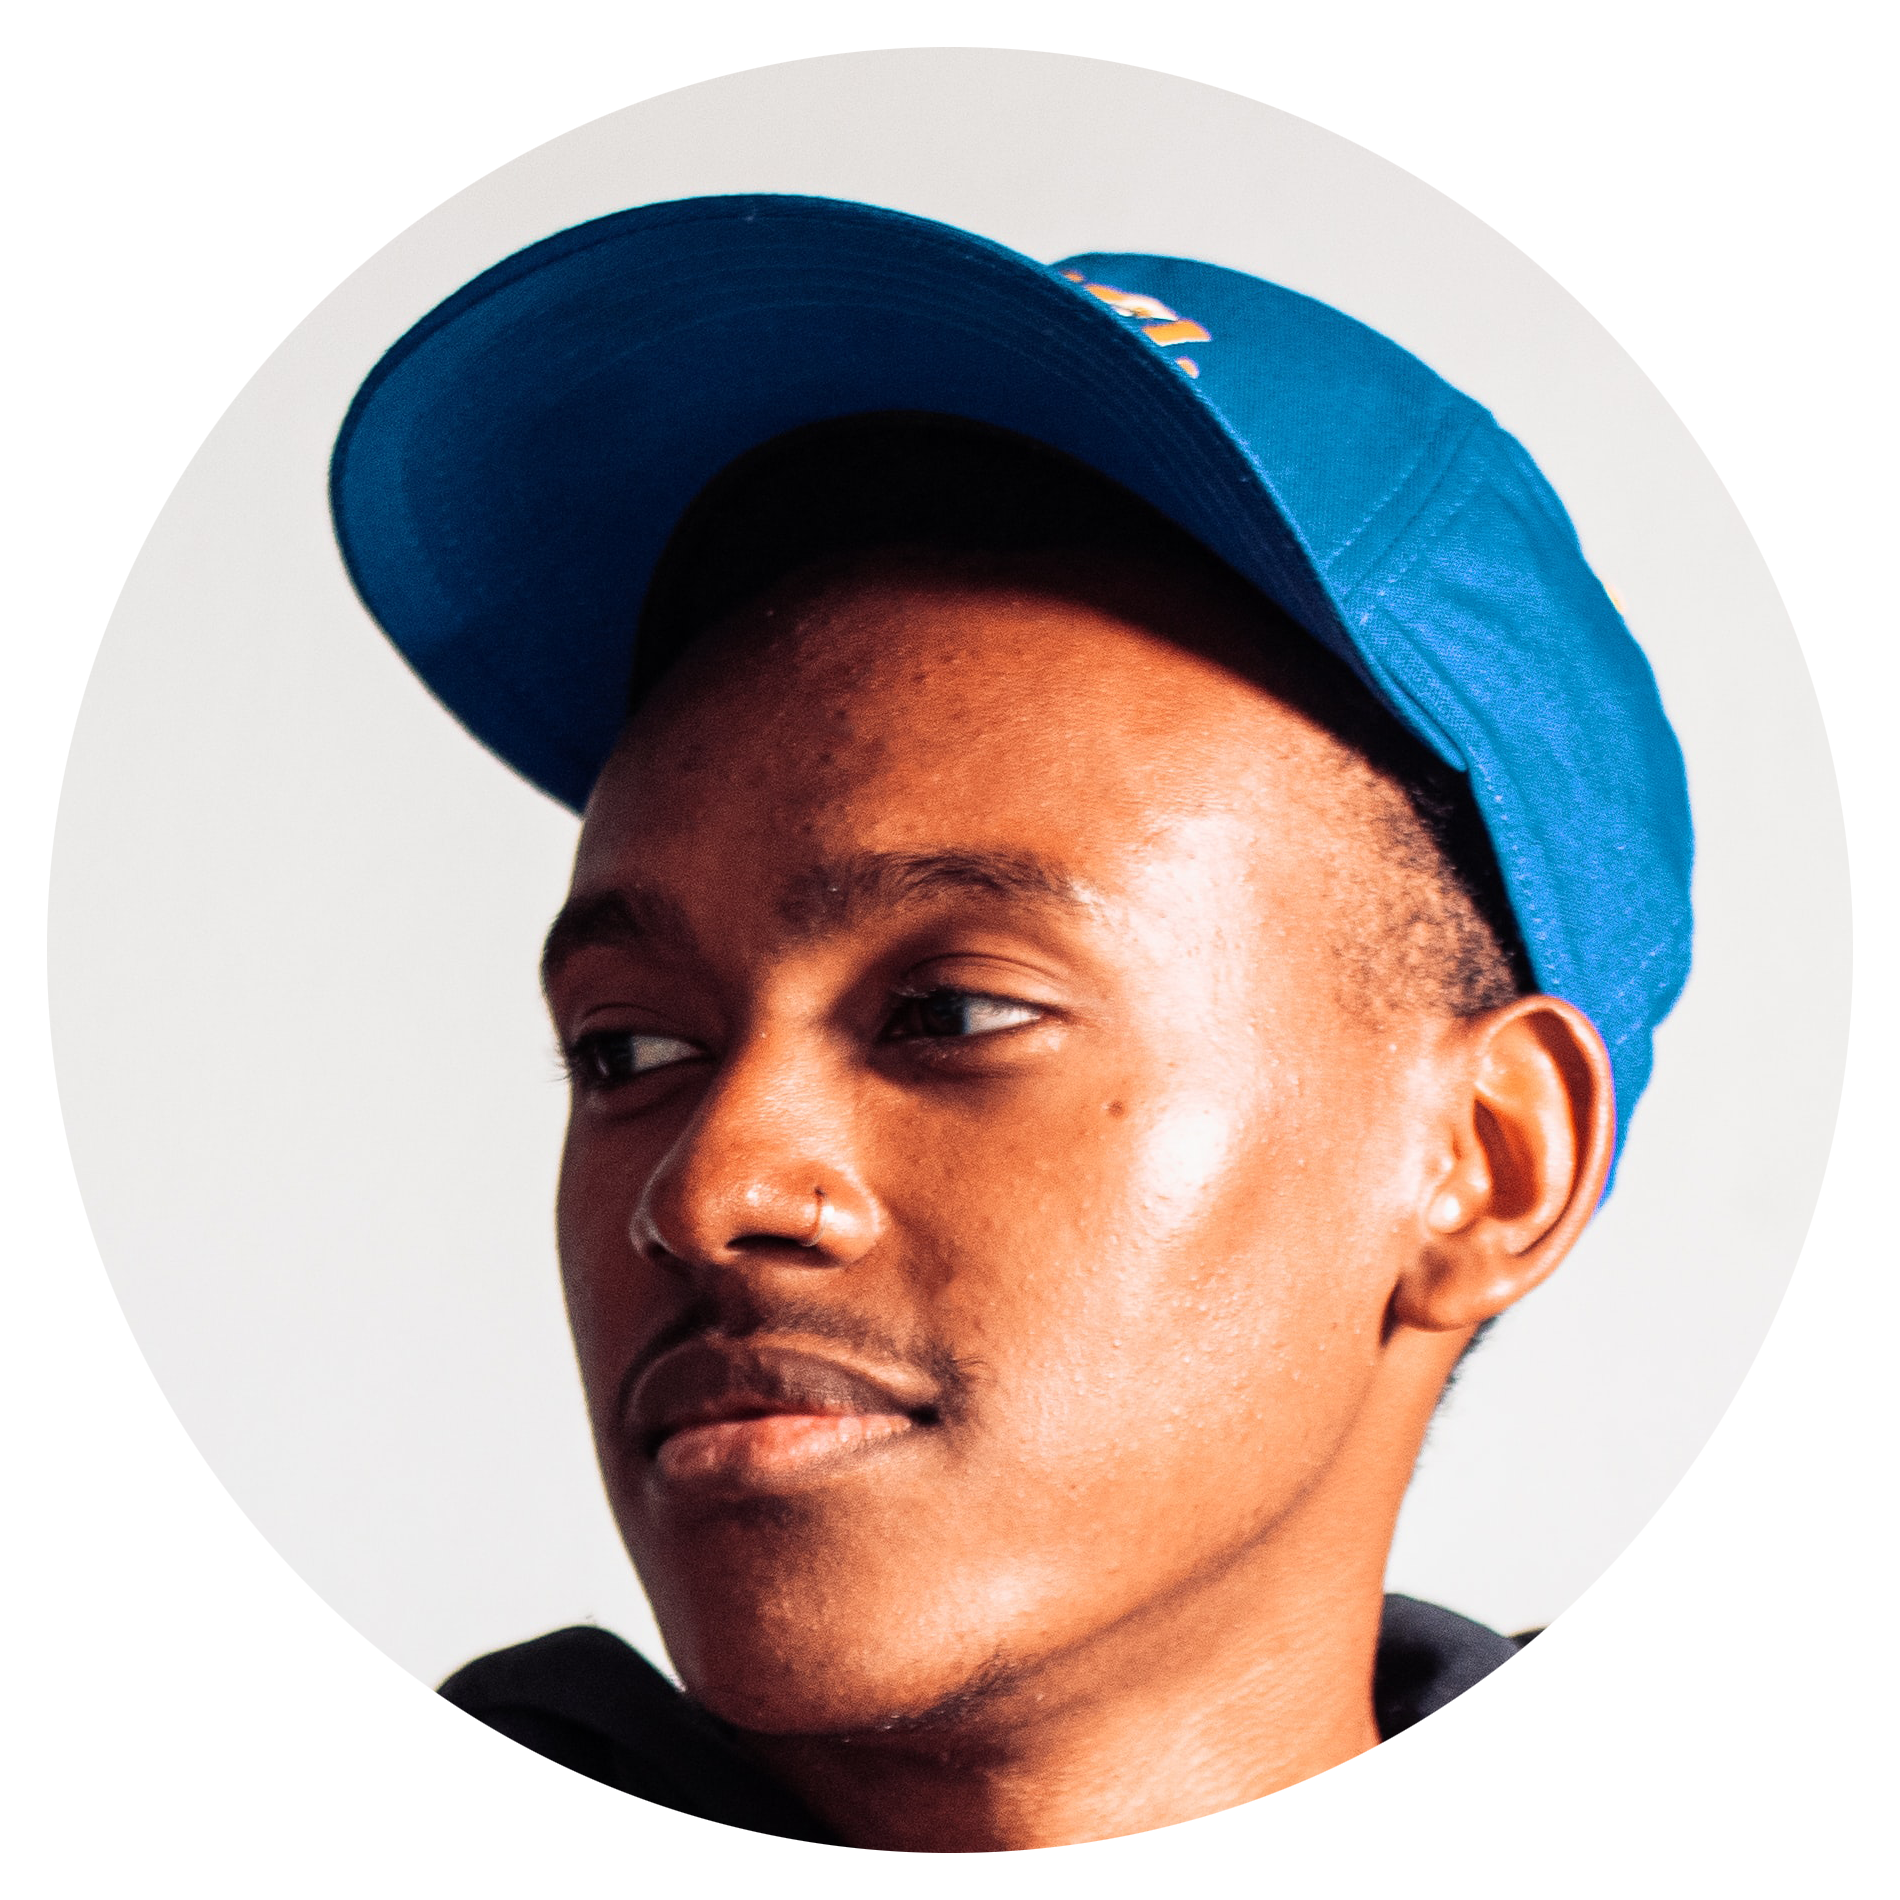 Image of a young man with a blue baseball cap staring off to the left. This is a customer review image.